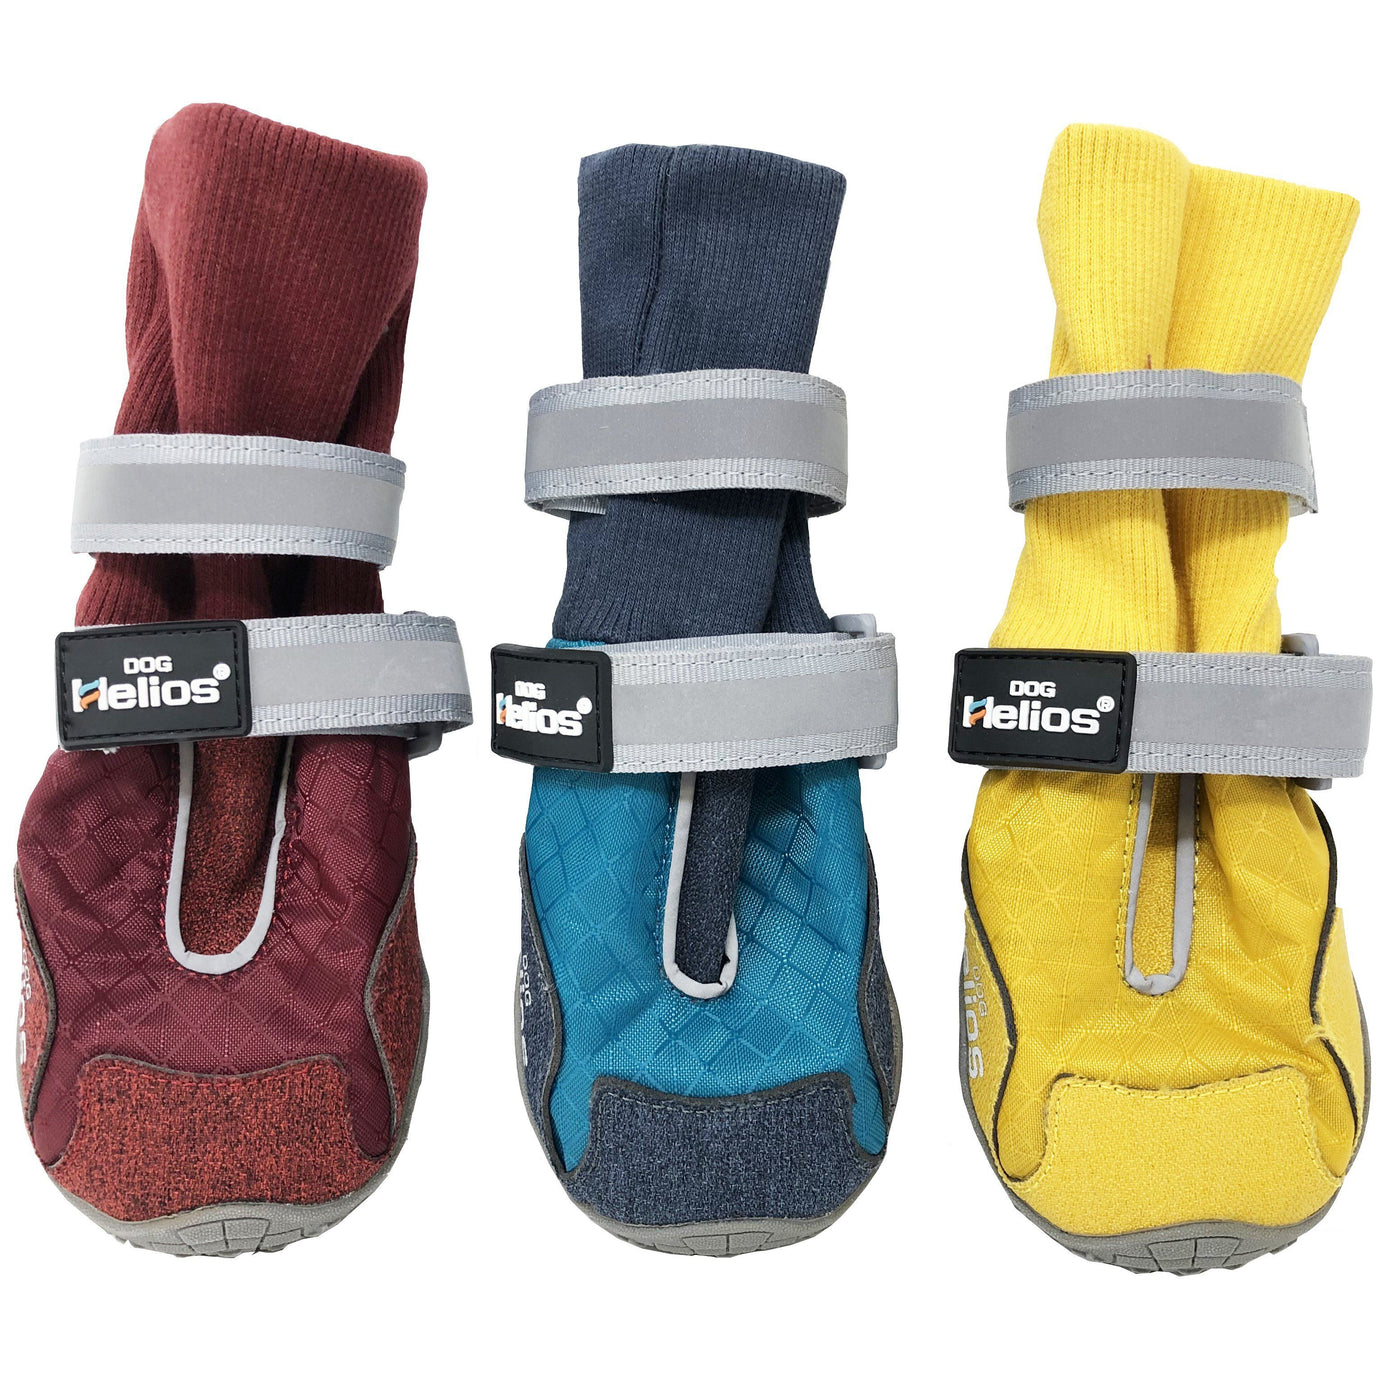 High ankle outdoor dog boots